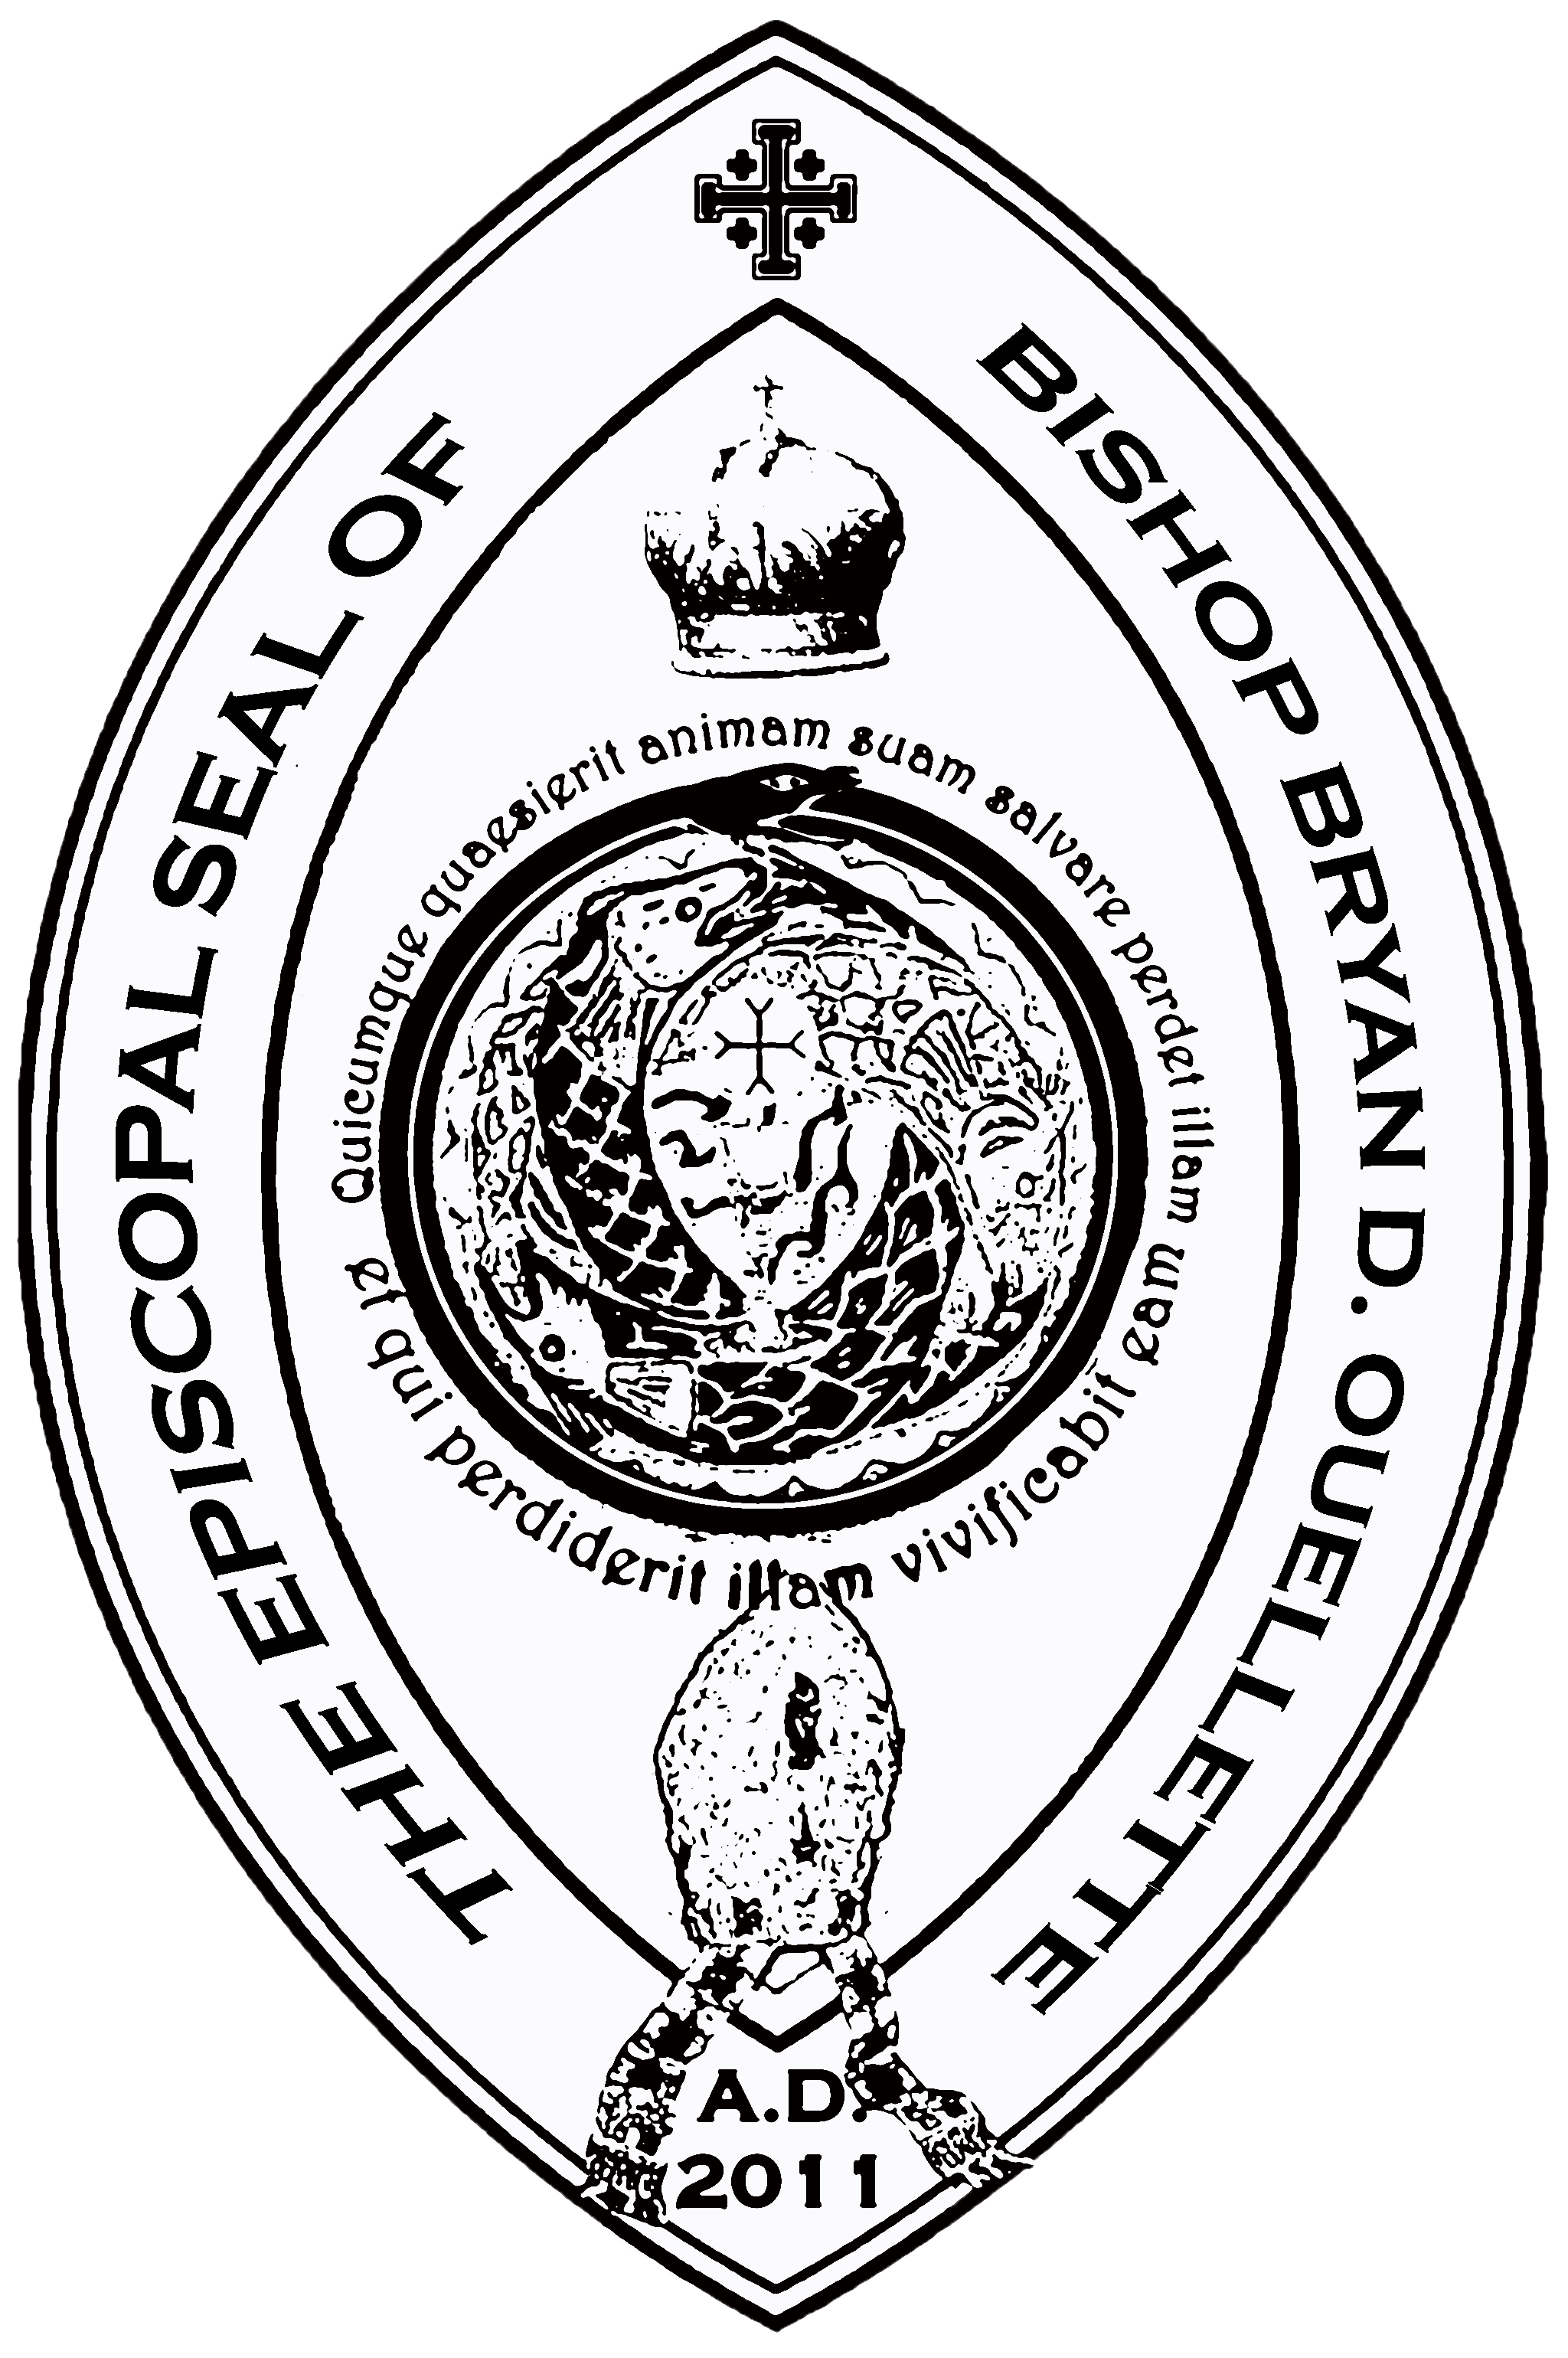 The Episcopal Seal of Bishop Bryan D. Ouellette, Ph.D., SOSM